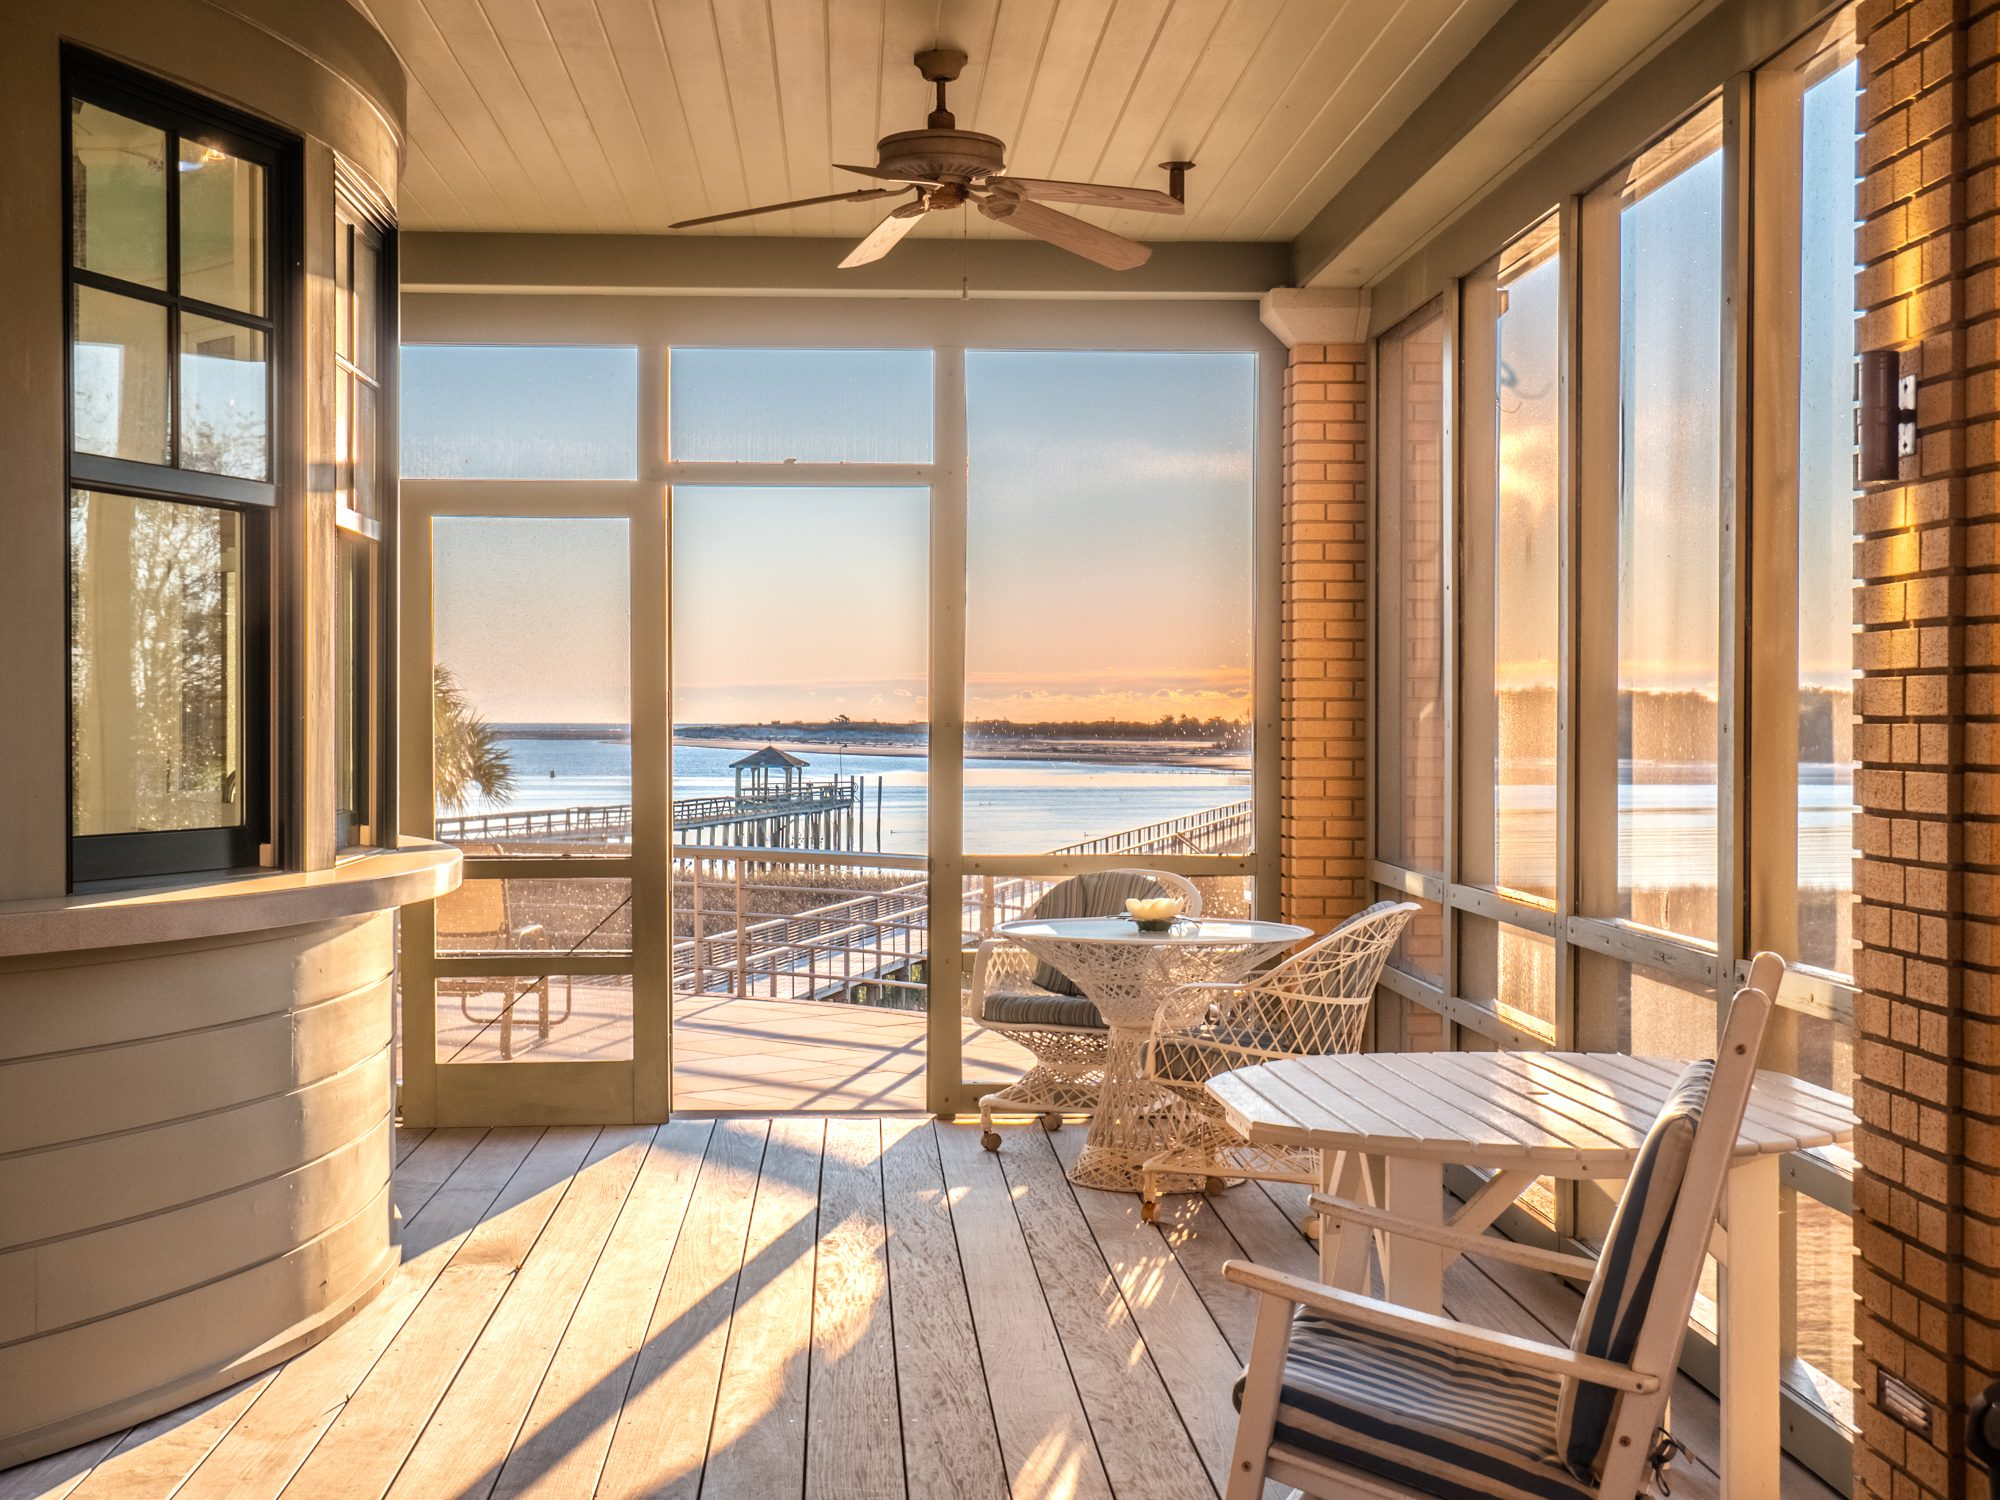 screened front porch with a water view. Wood decking. Brick pillars.